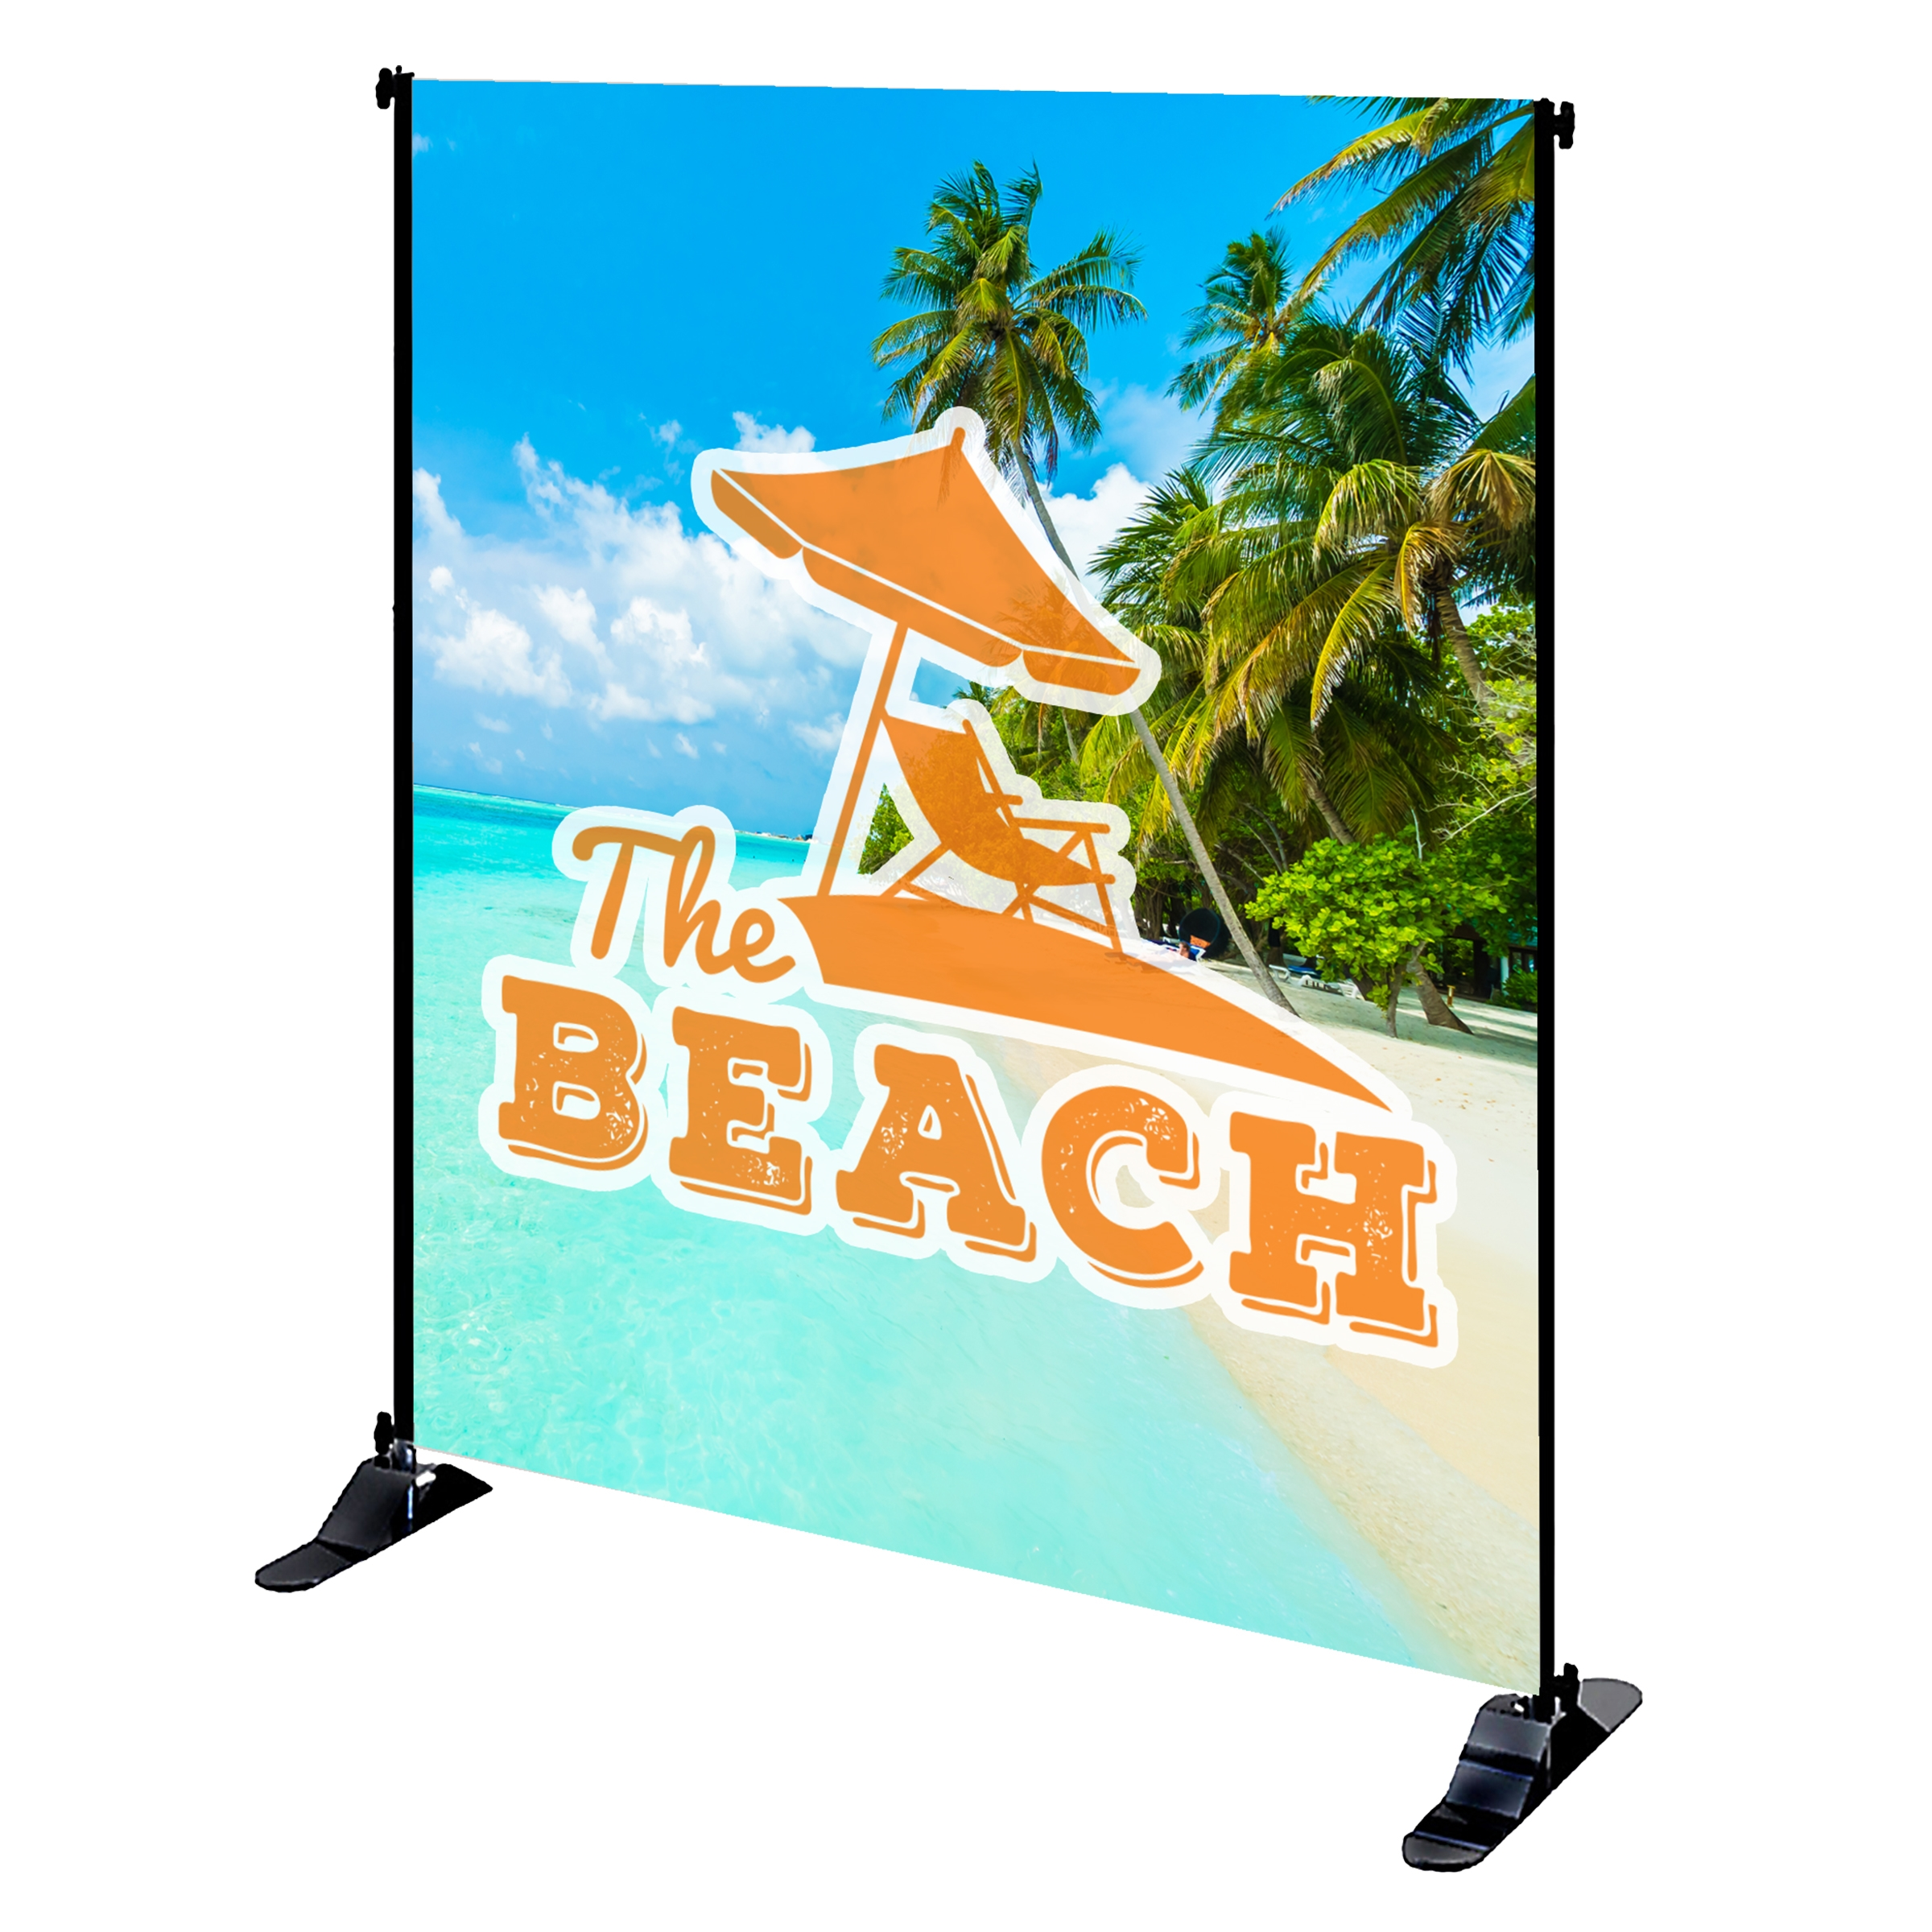 Mighty Banner Display - 6' x 8' Large Tube Frame and Fabric Graphic Kit